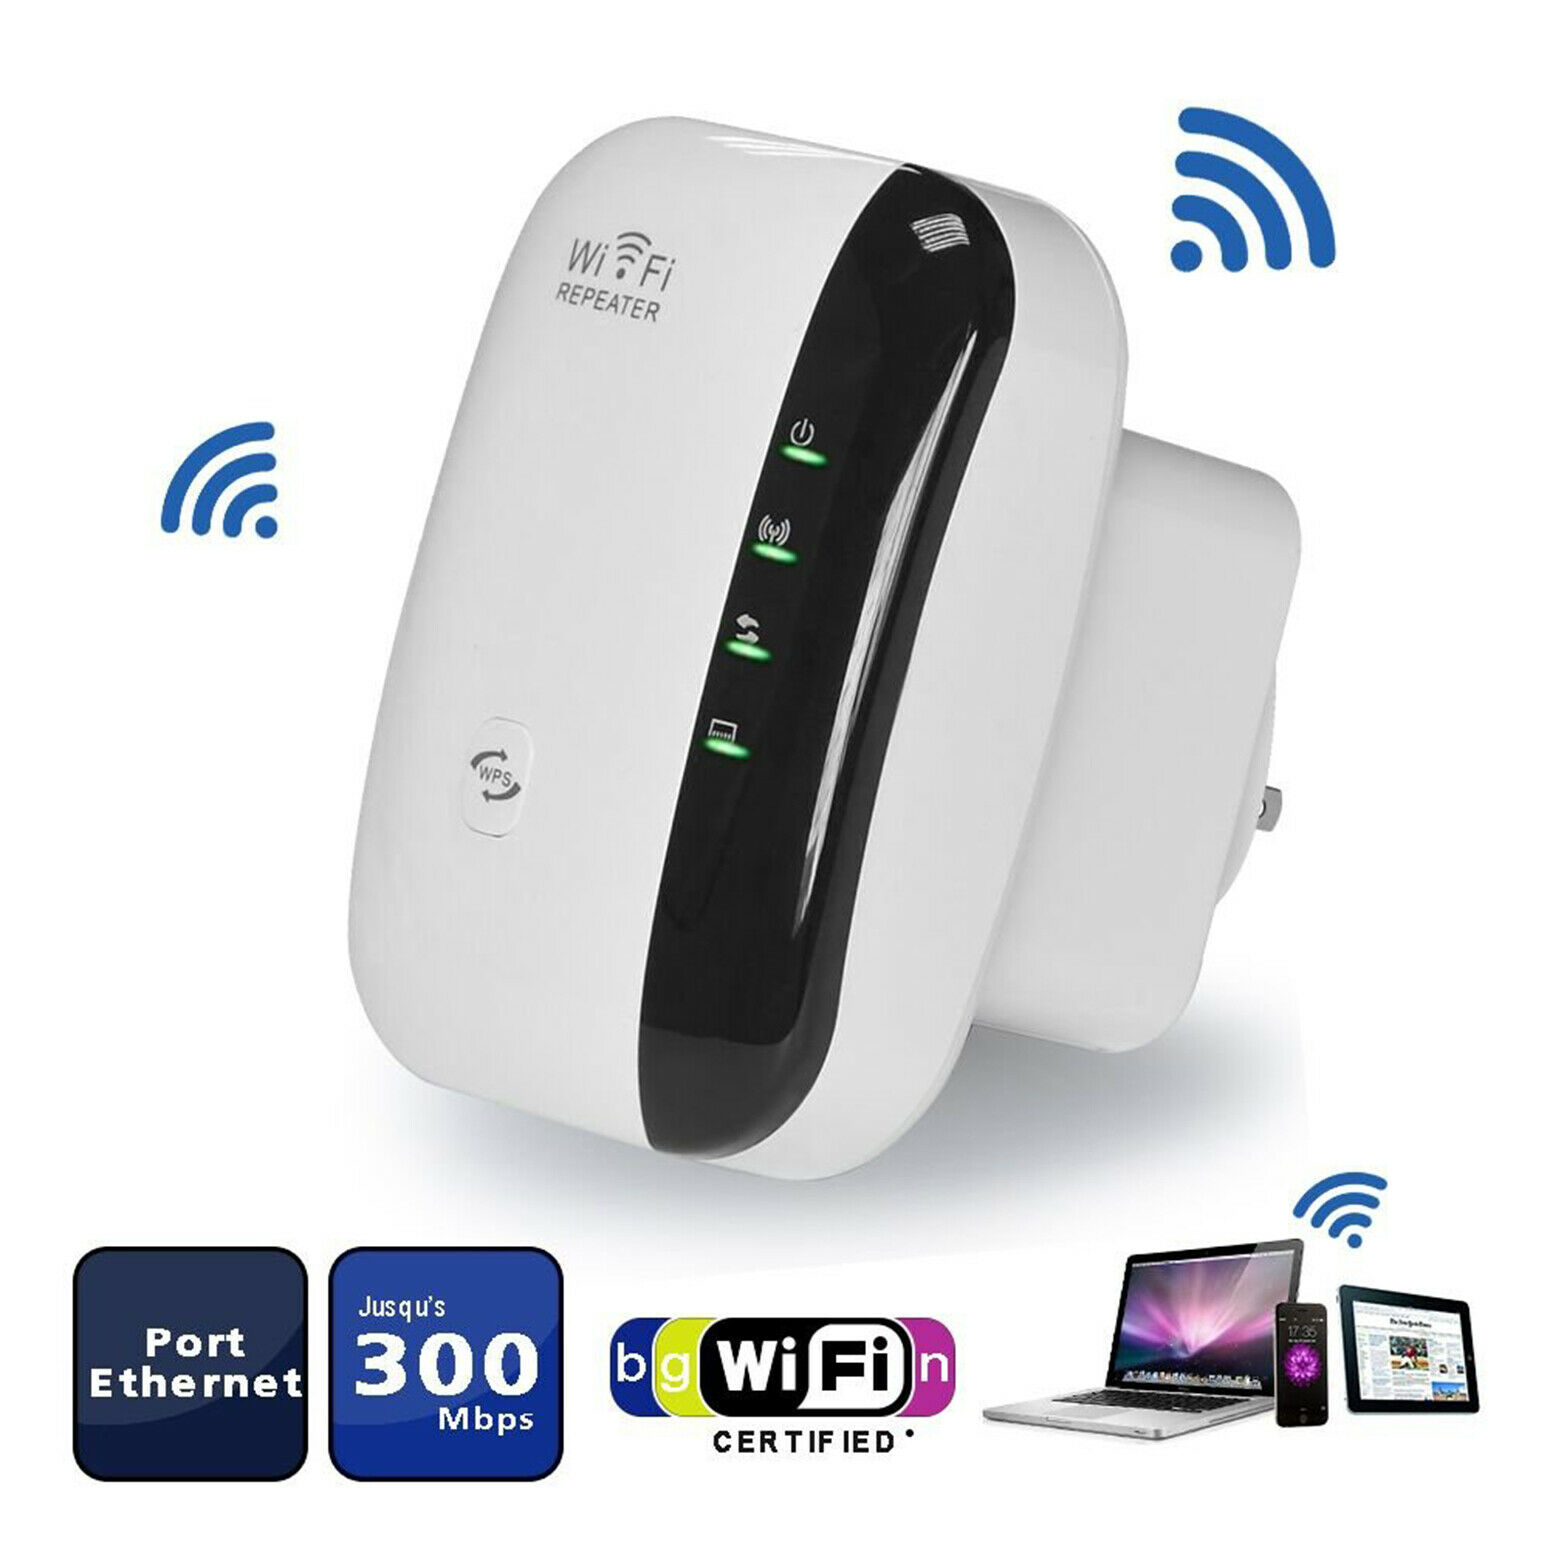 WiFi Range Extender Super Booster 300Mbps 2.4G Boost Speed W